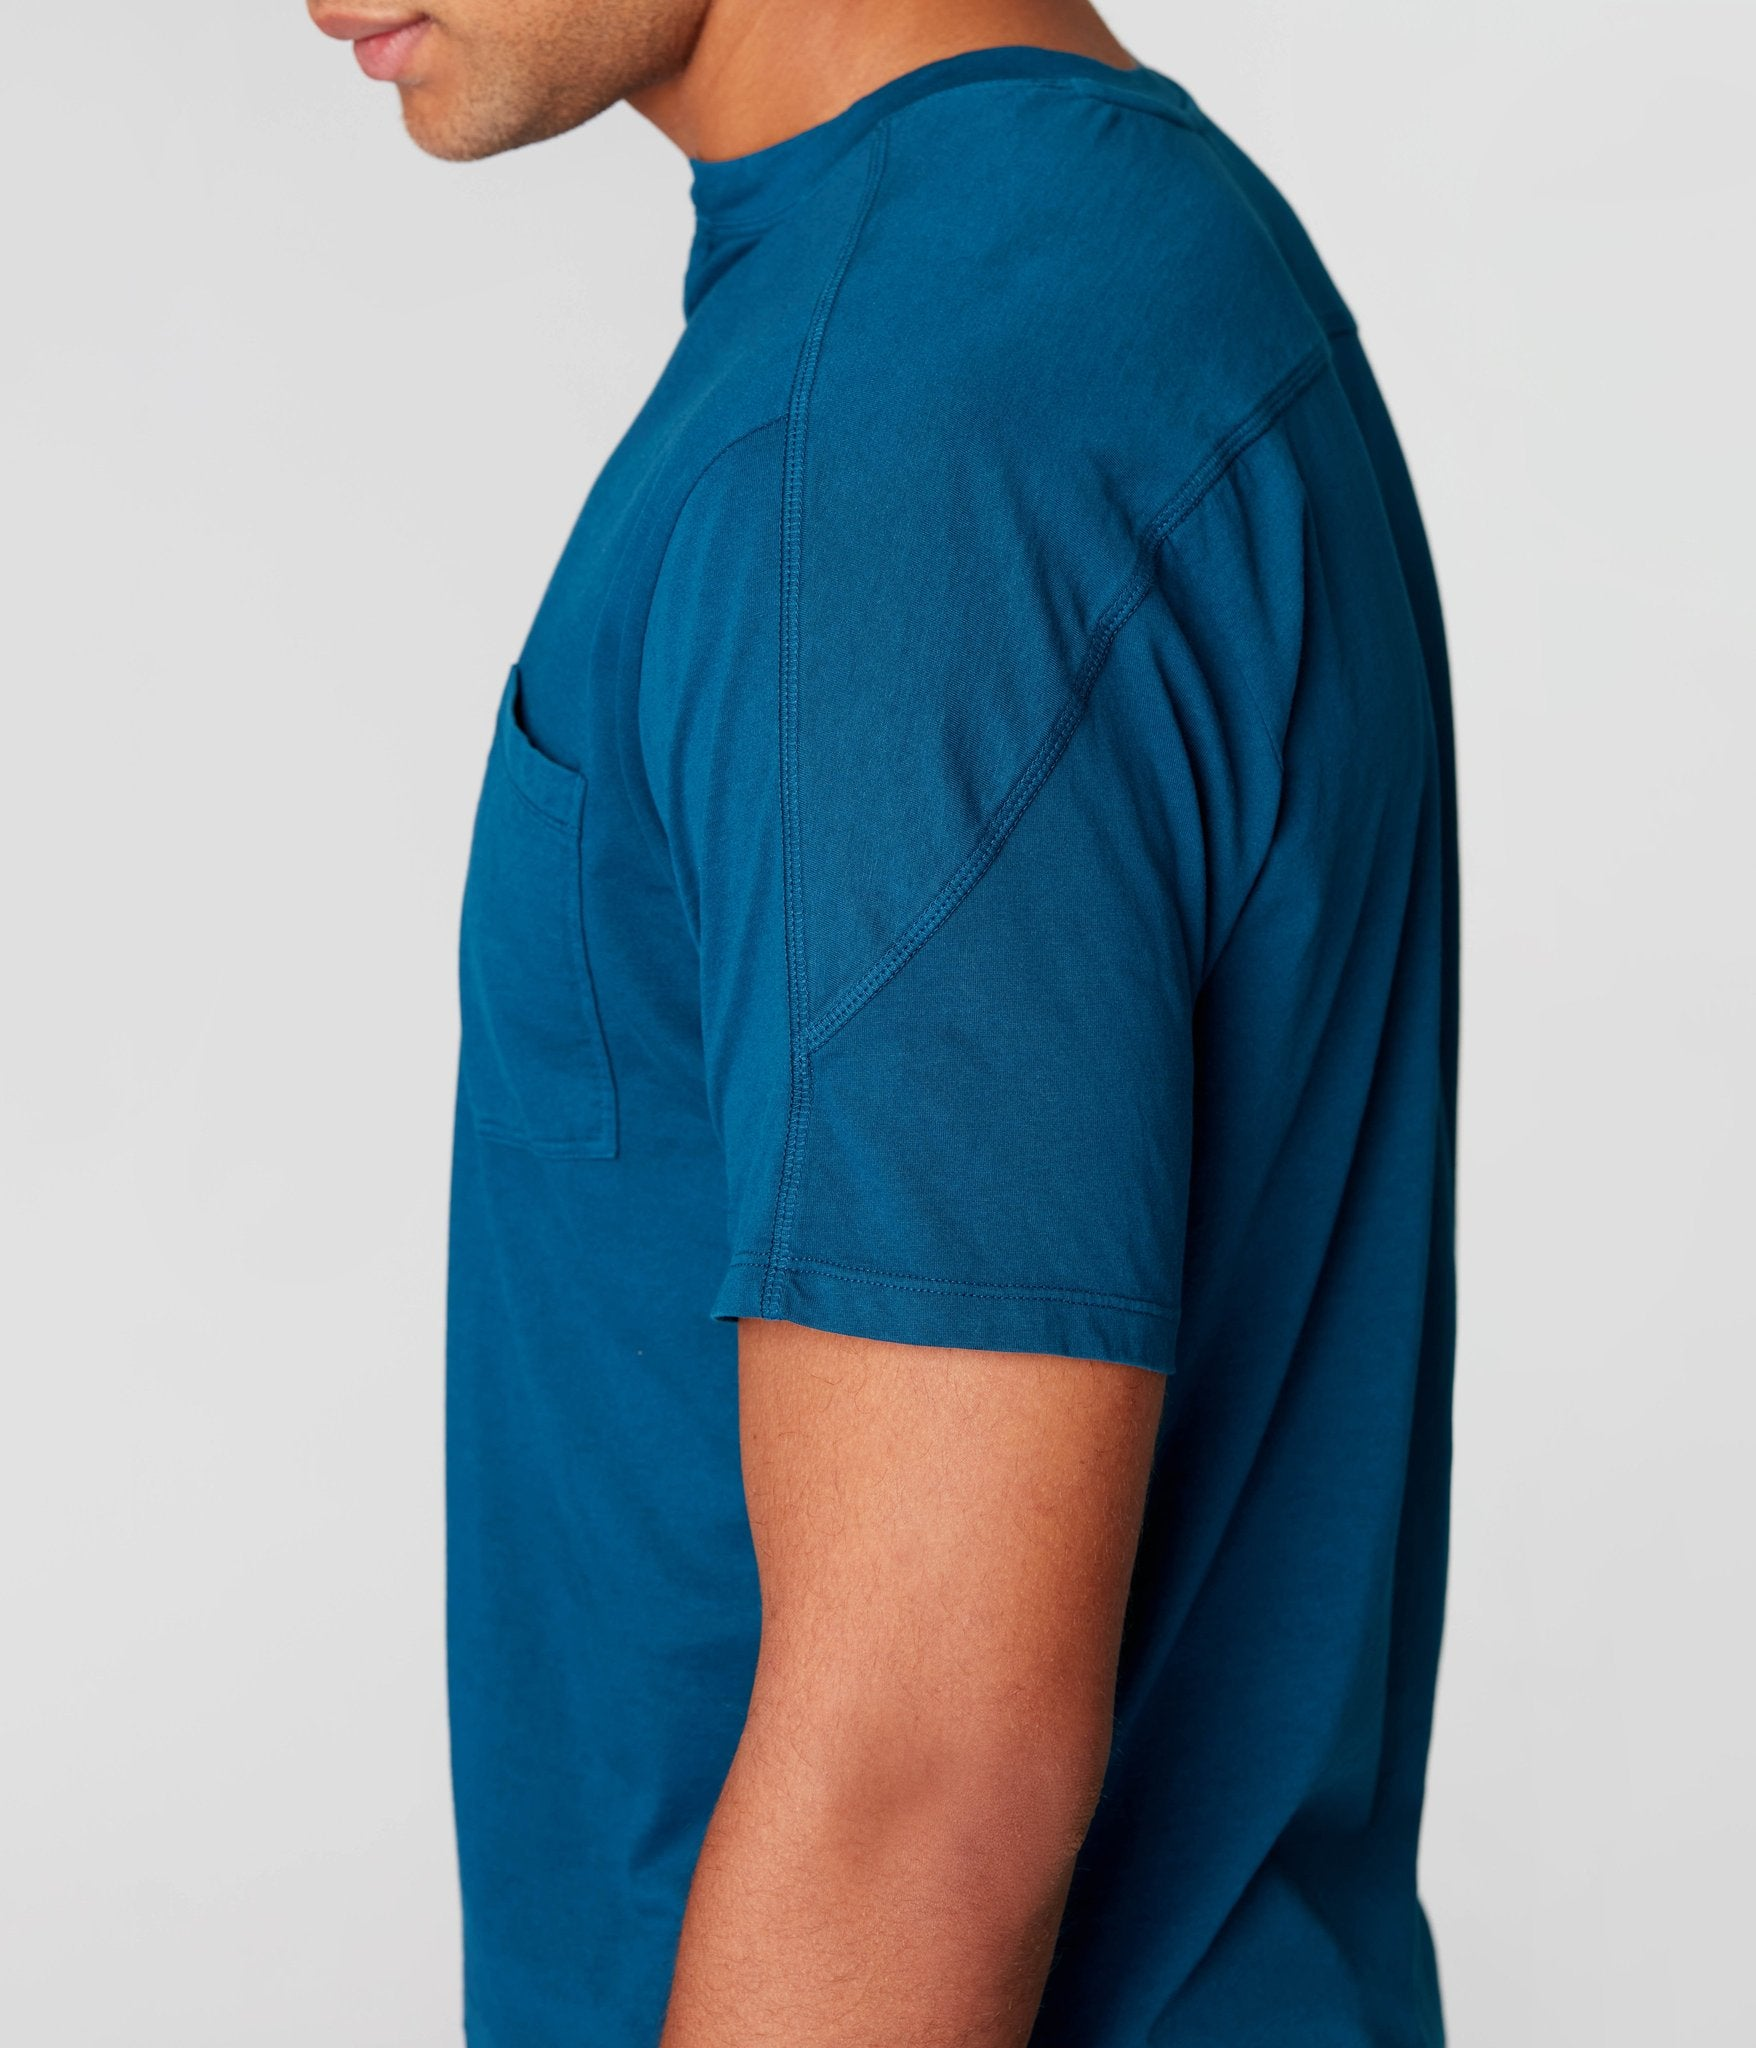 Short Sleeve Victory Notch Tee- Sea